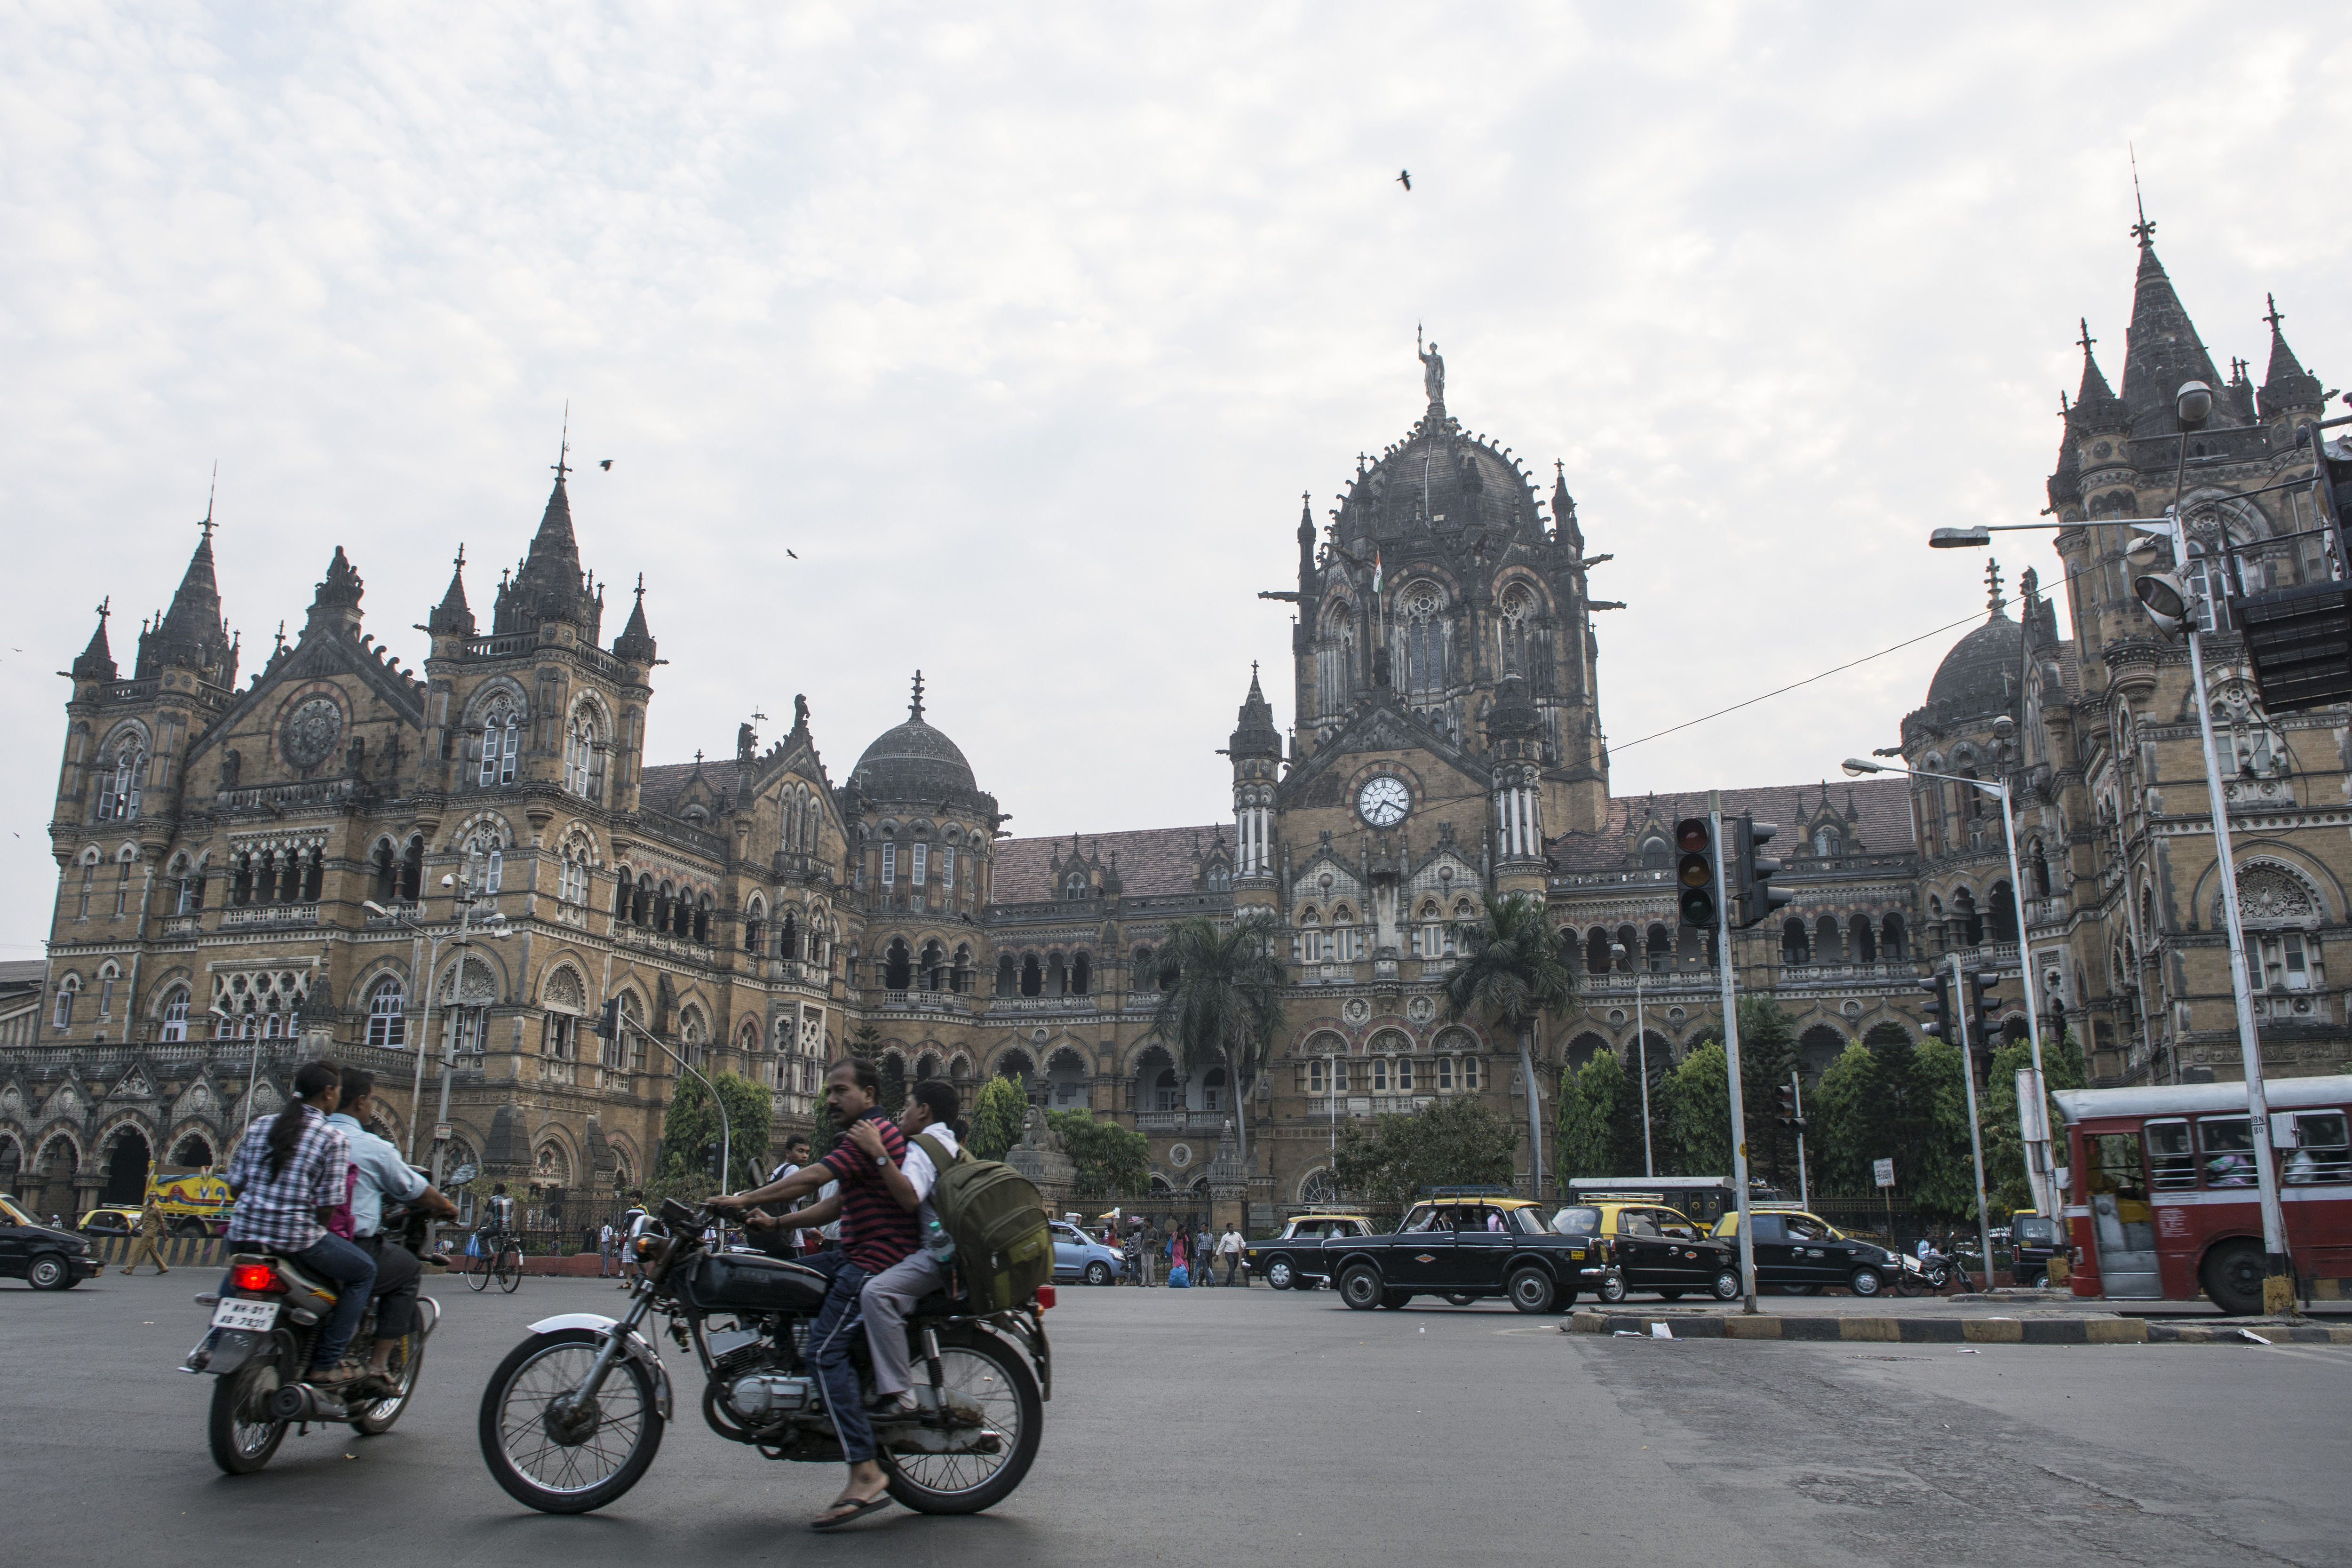 The Mumbai central railway station, today named Chhatrapati Shivaji Terminus, is formerly known as Victoria Terminus